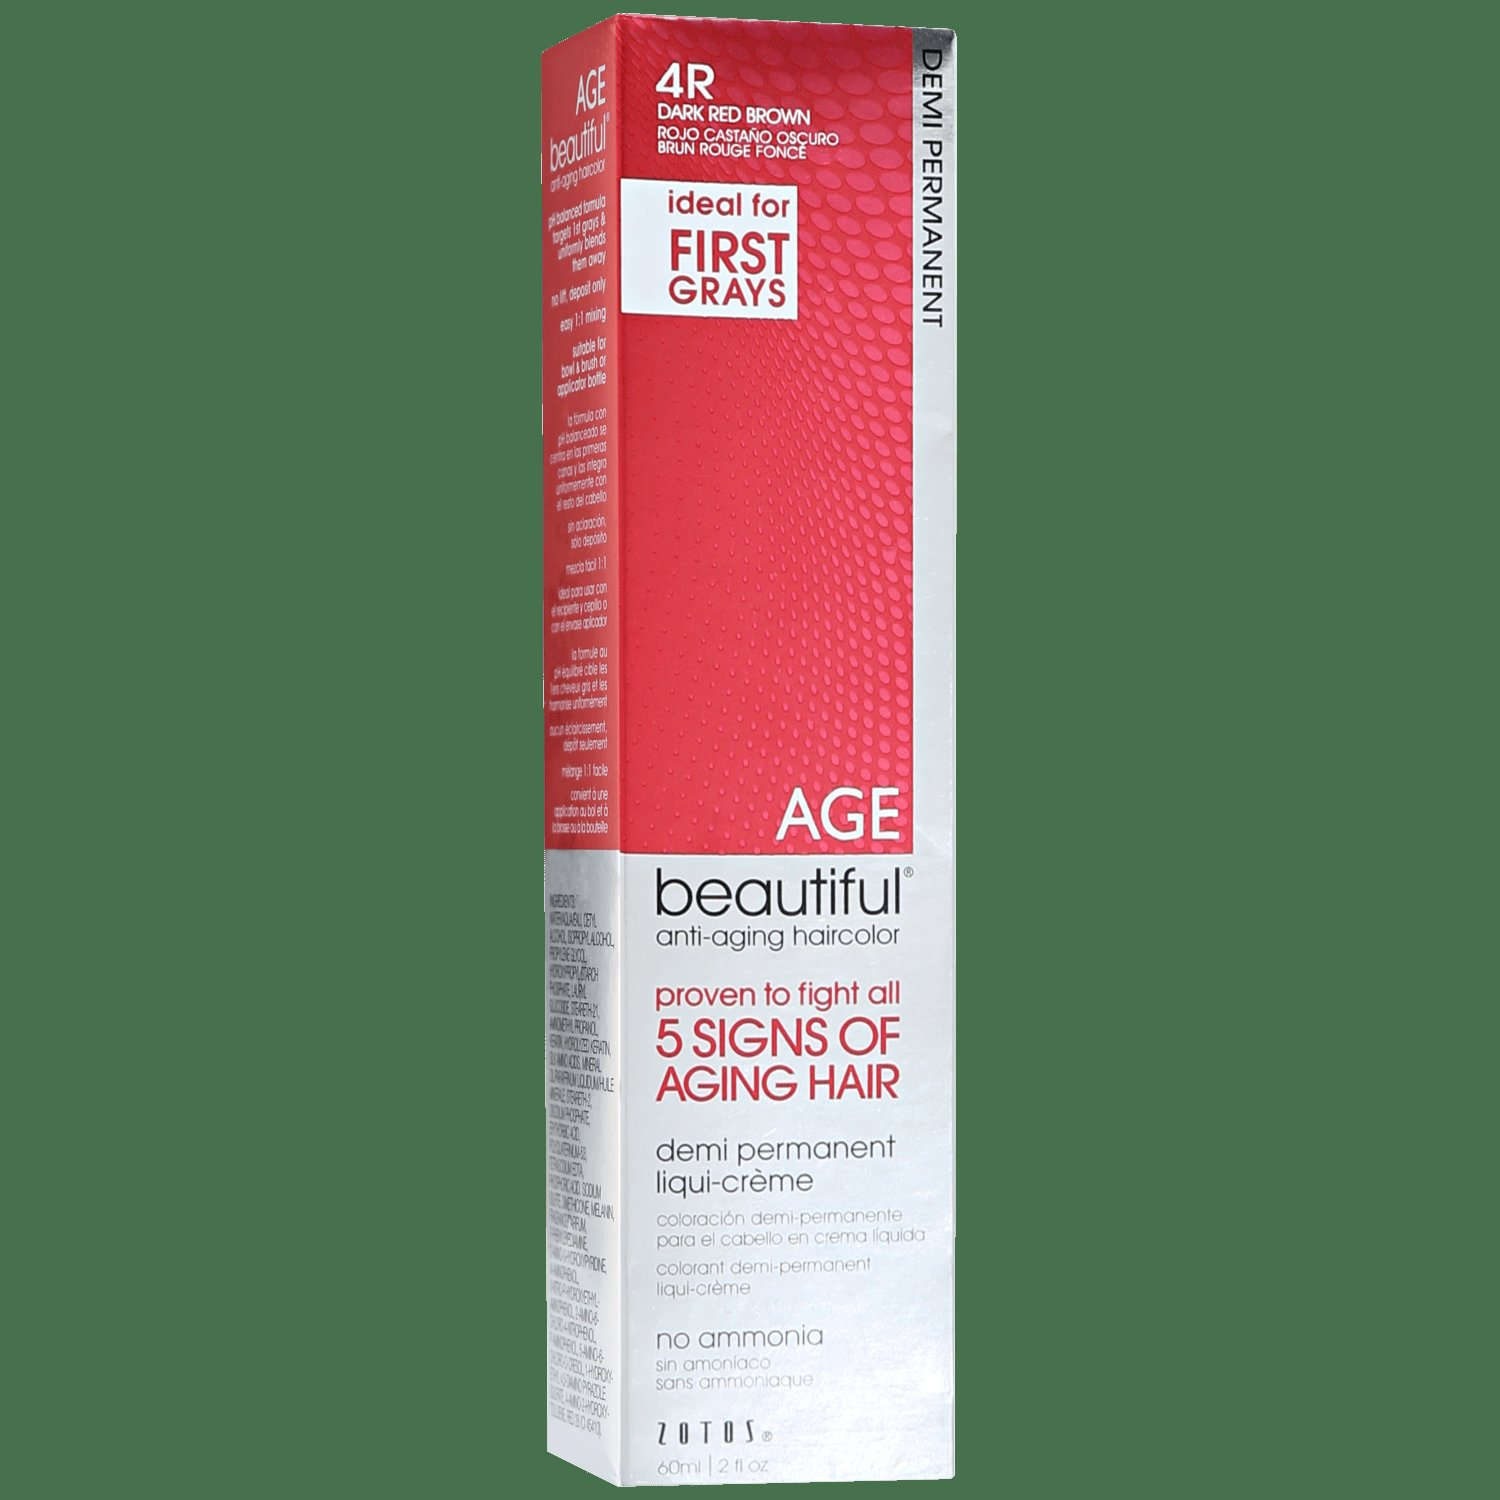 The Best Best Beauty Supplies Agebeautiful Anti Aging Demi Pictures